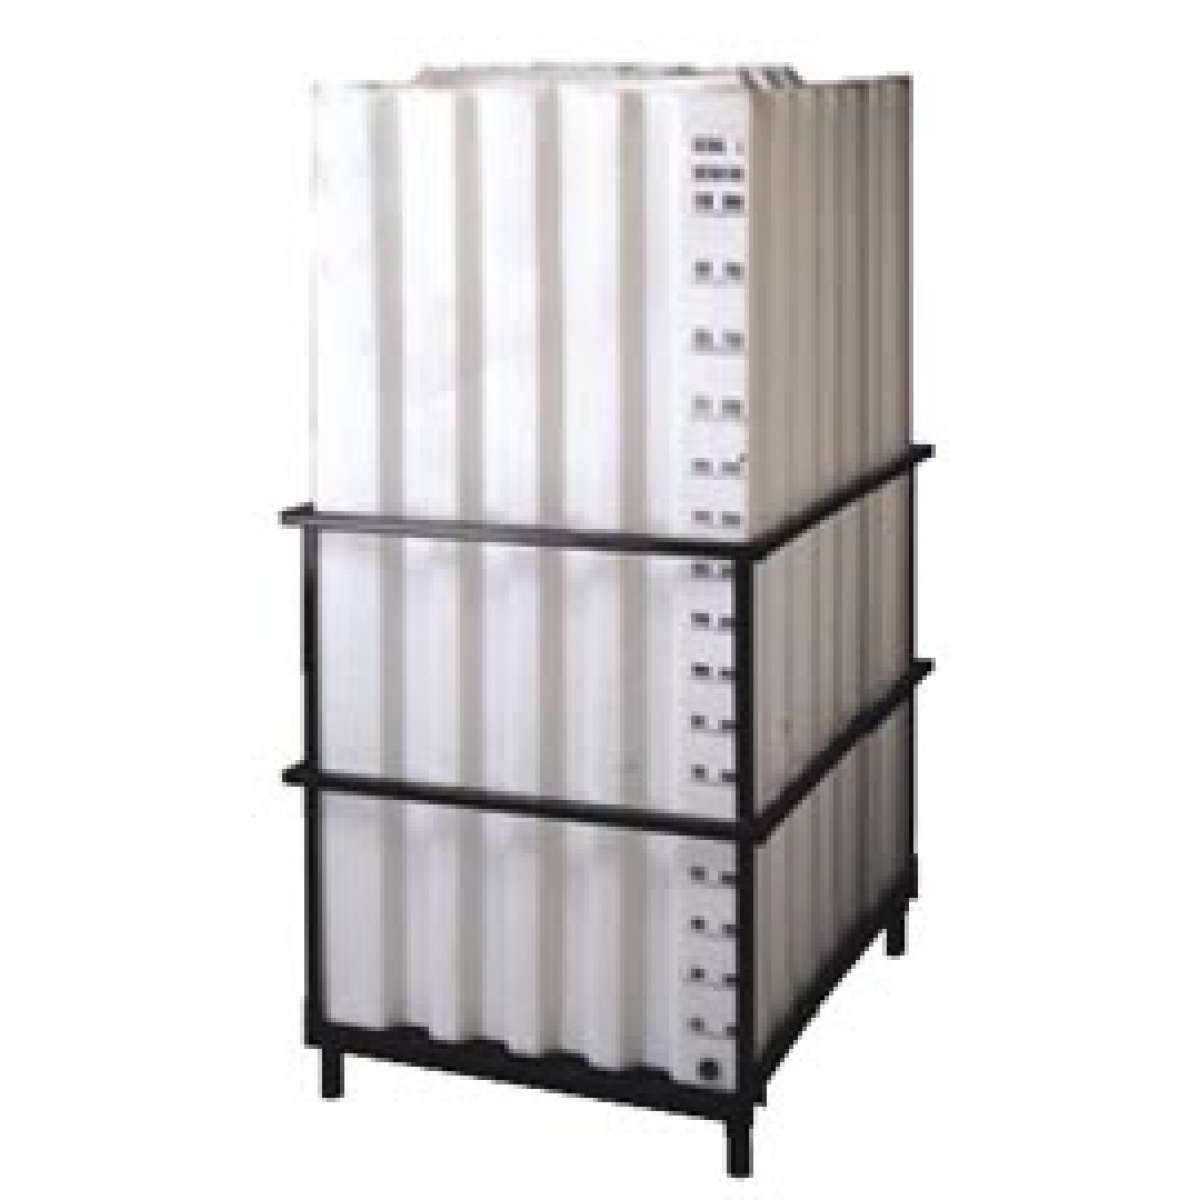 330 Gallon (1250 L) Poly Container with Frame